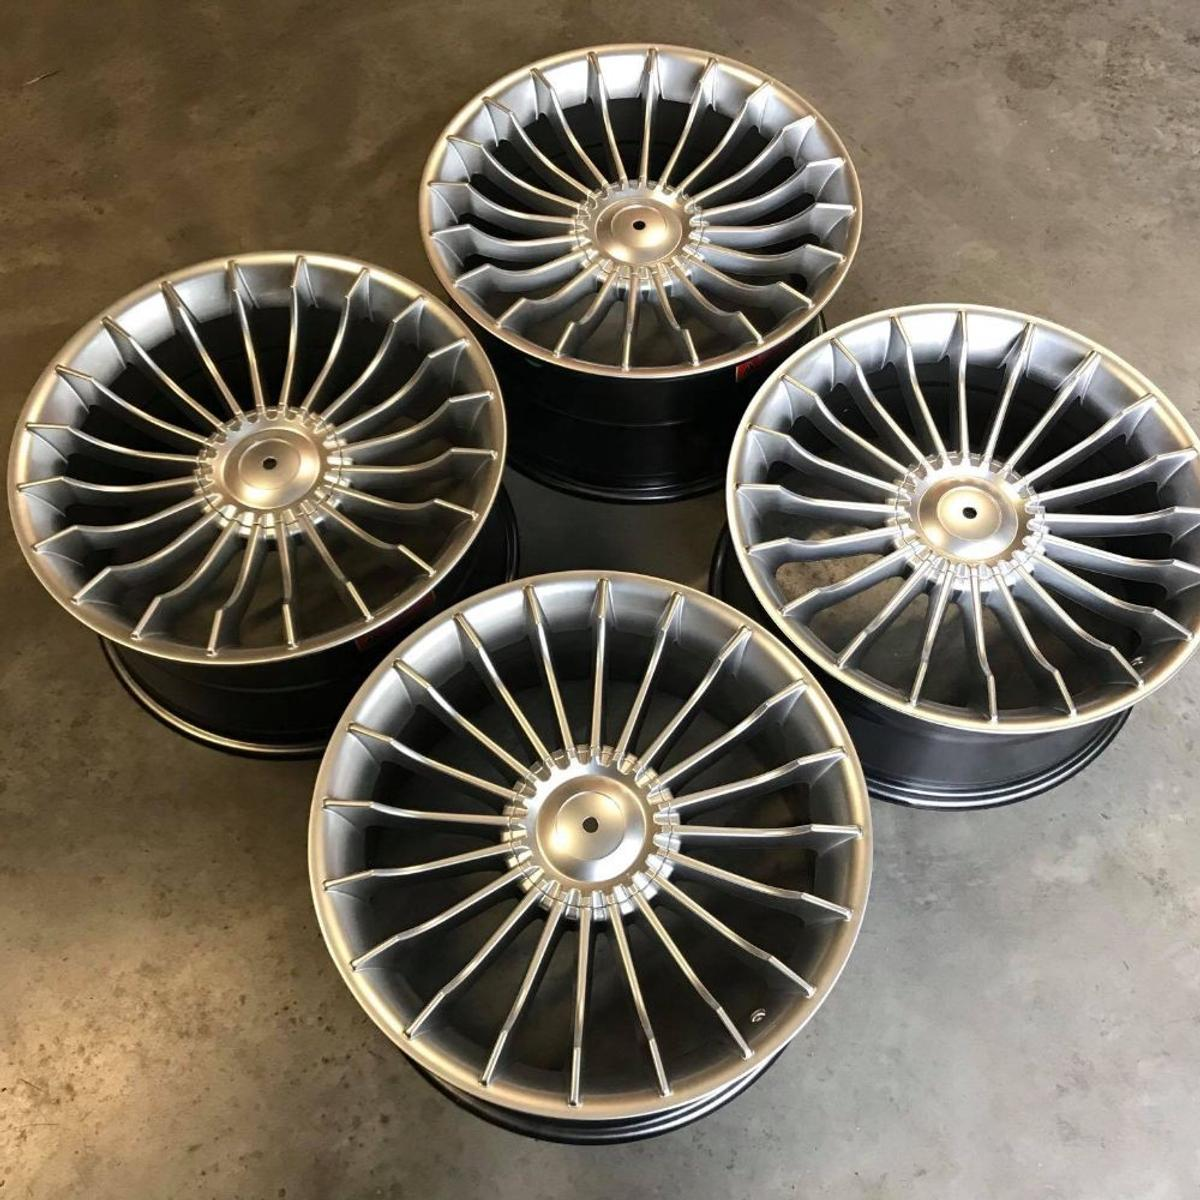 19 Inch Bmw Alpina D3 Style Alloy Wheels In Bt71 Dungannon For